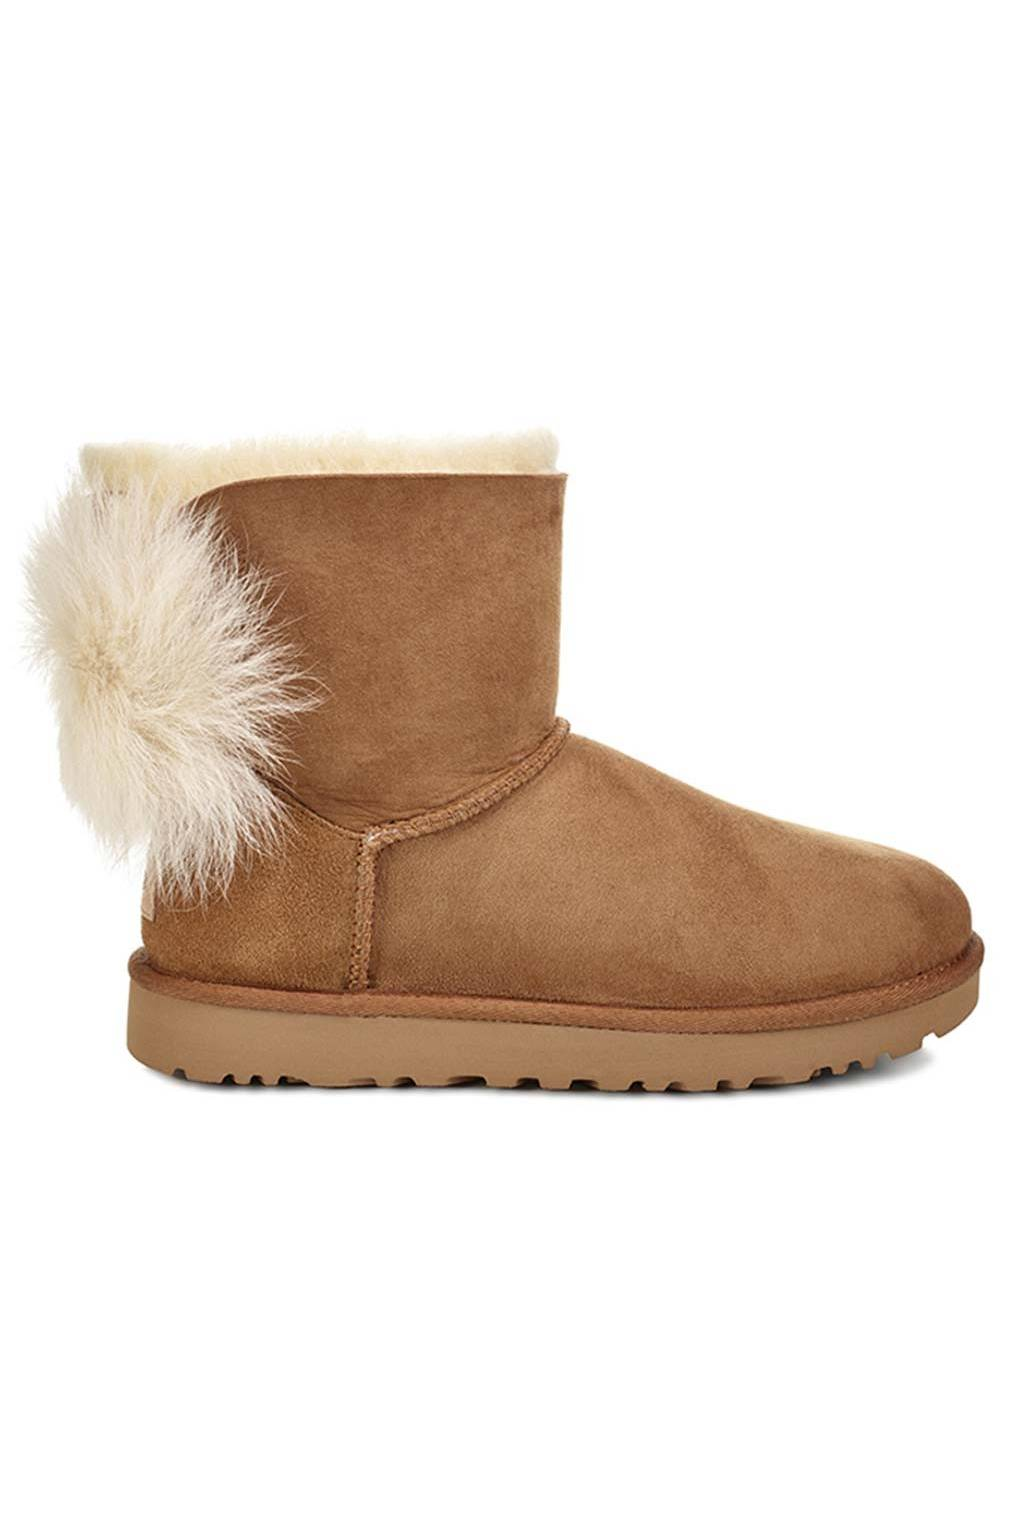 Ugg w Fluff Bow Mini Chestnut 1094967